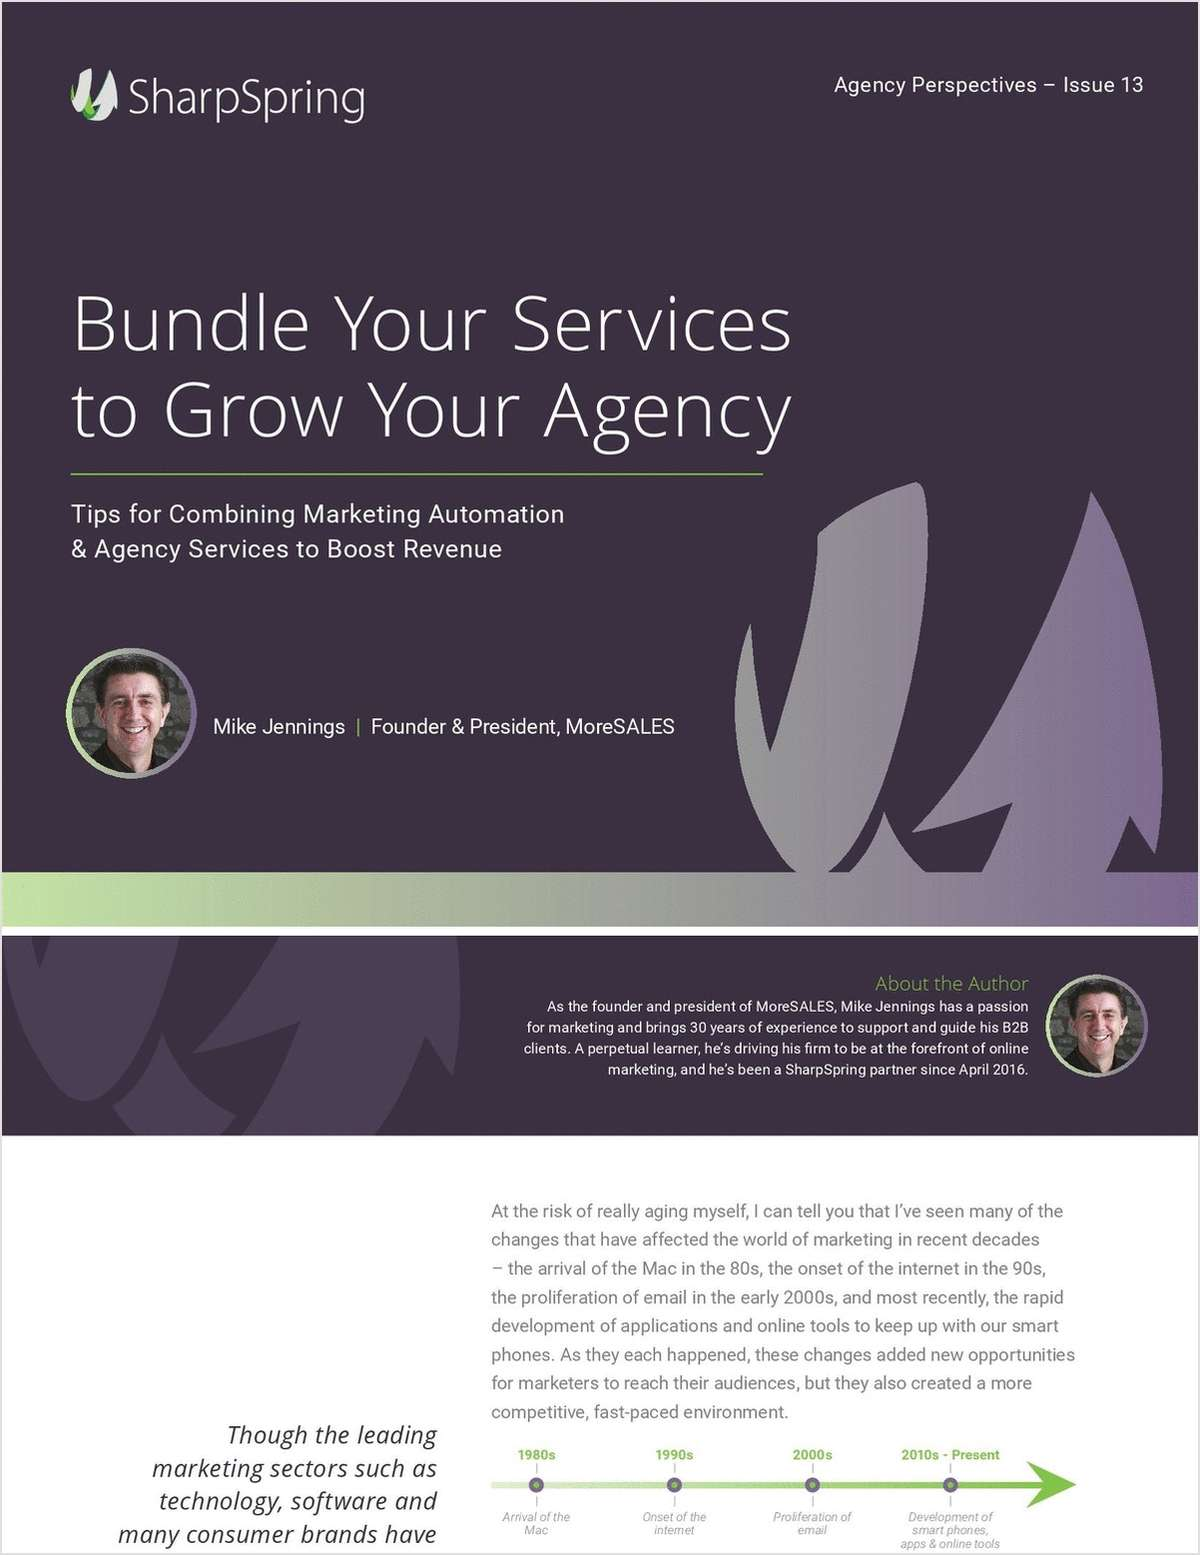 Bundle Your Agency Services to Boost Revenue